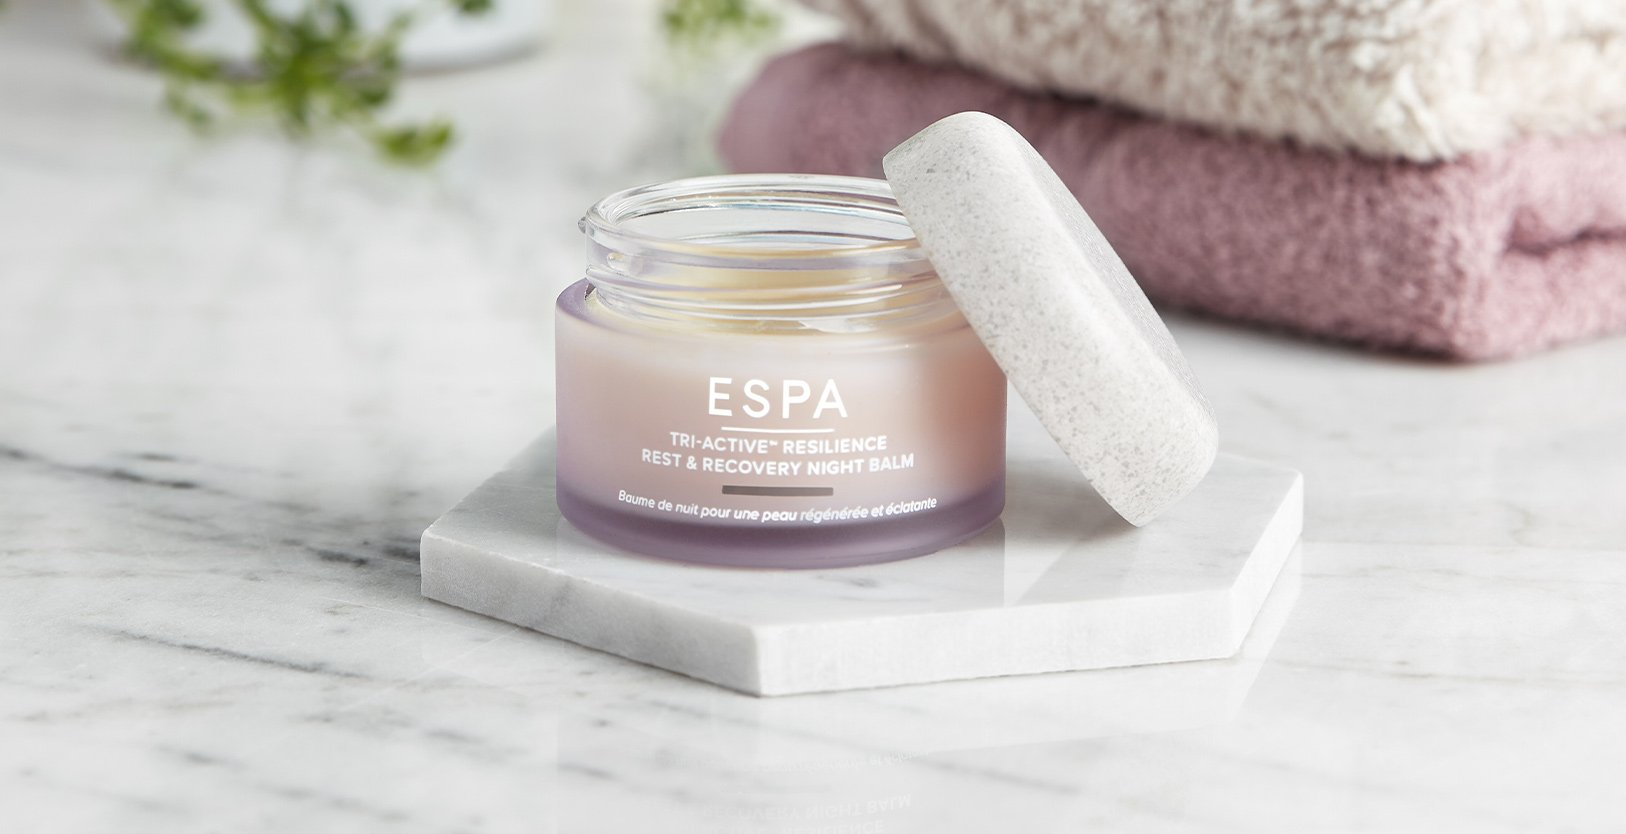 ESPA Skincare Tri-Active ™ Resilience Rest & RecoveryNightBalm